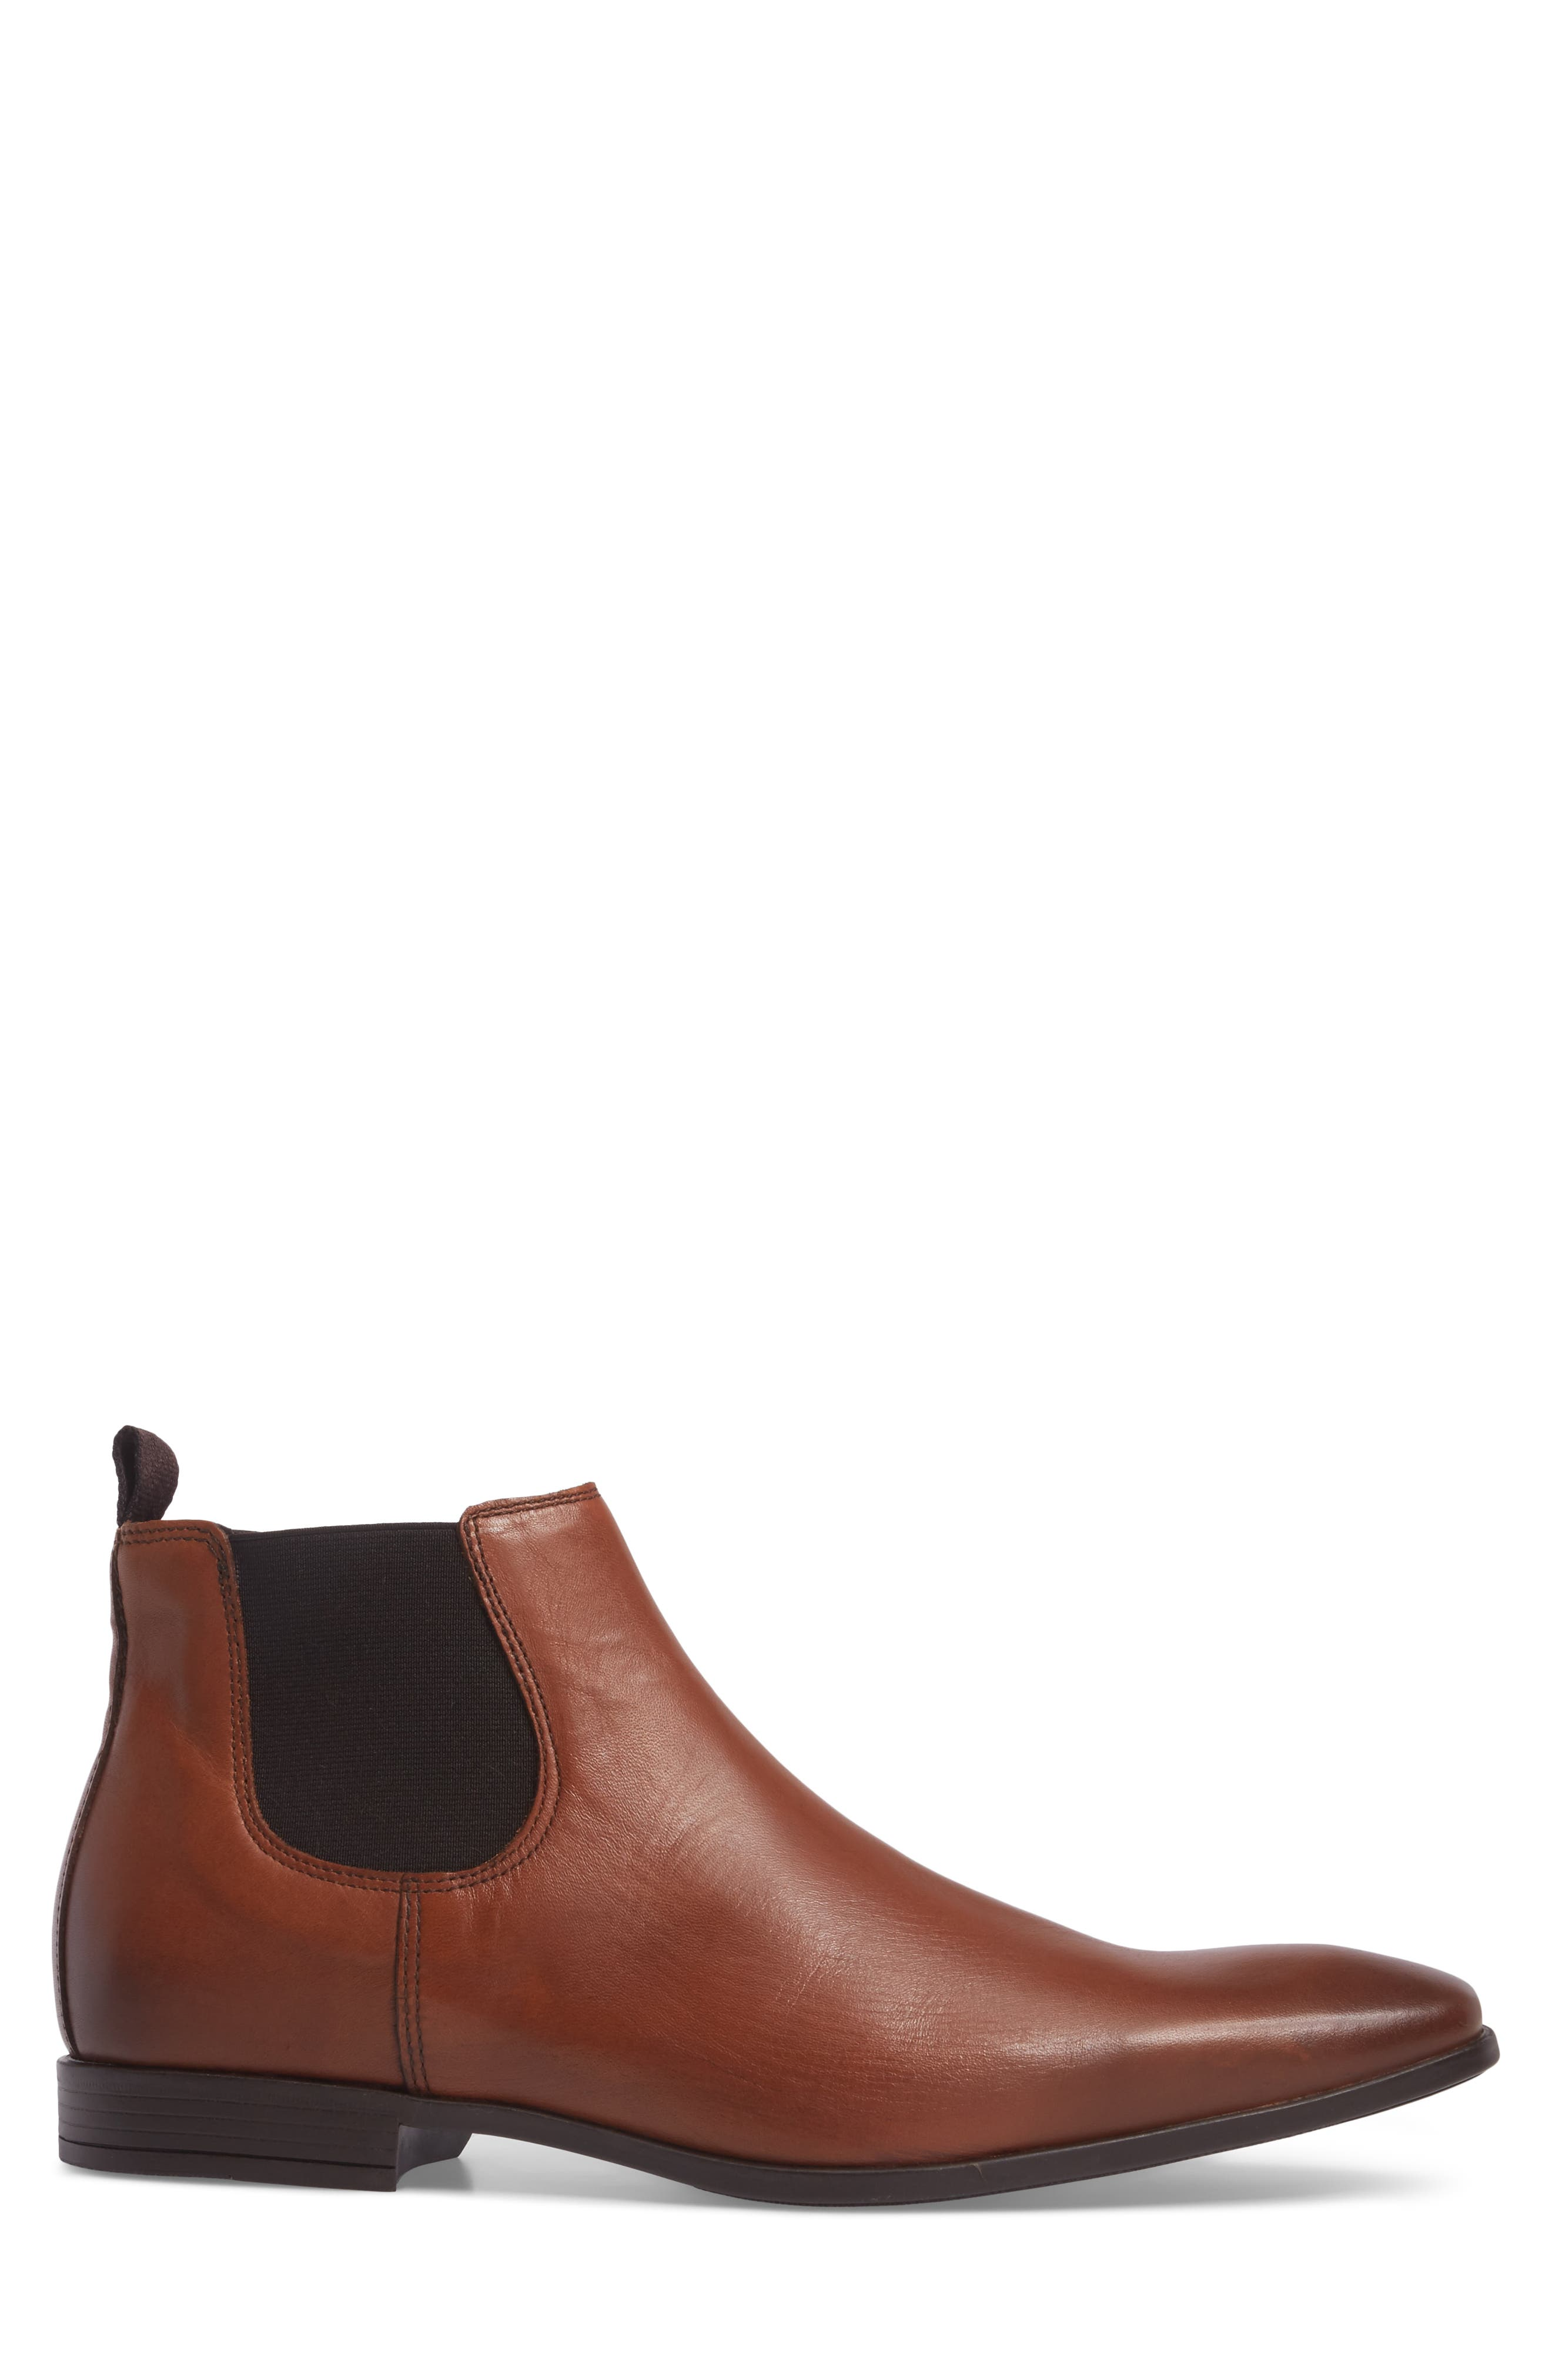 'Canton' Chelsea Boot,                             Alternate thumbnail 3, color,                             Tan Leather